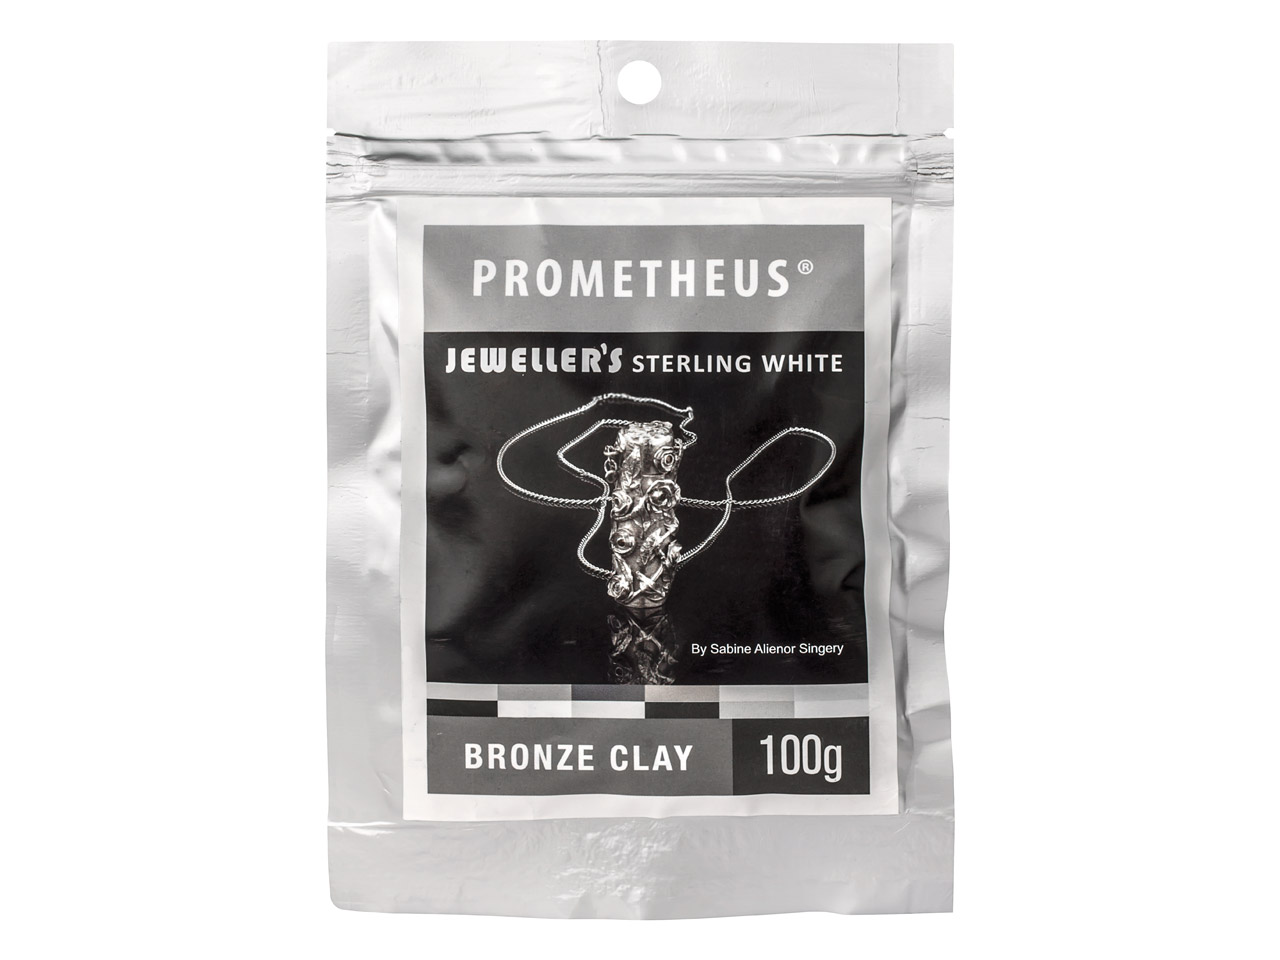 Prometheus Jewellers Sterling White Bronze Clay 100g